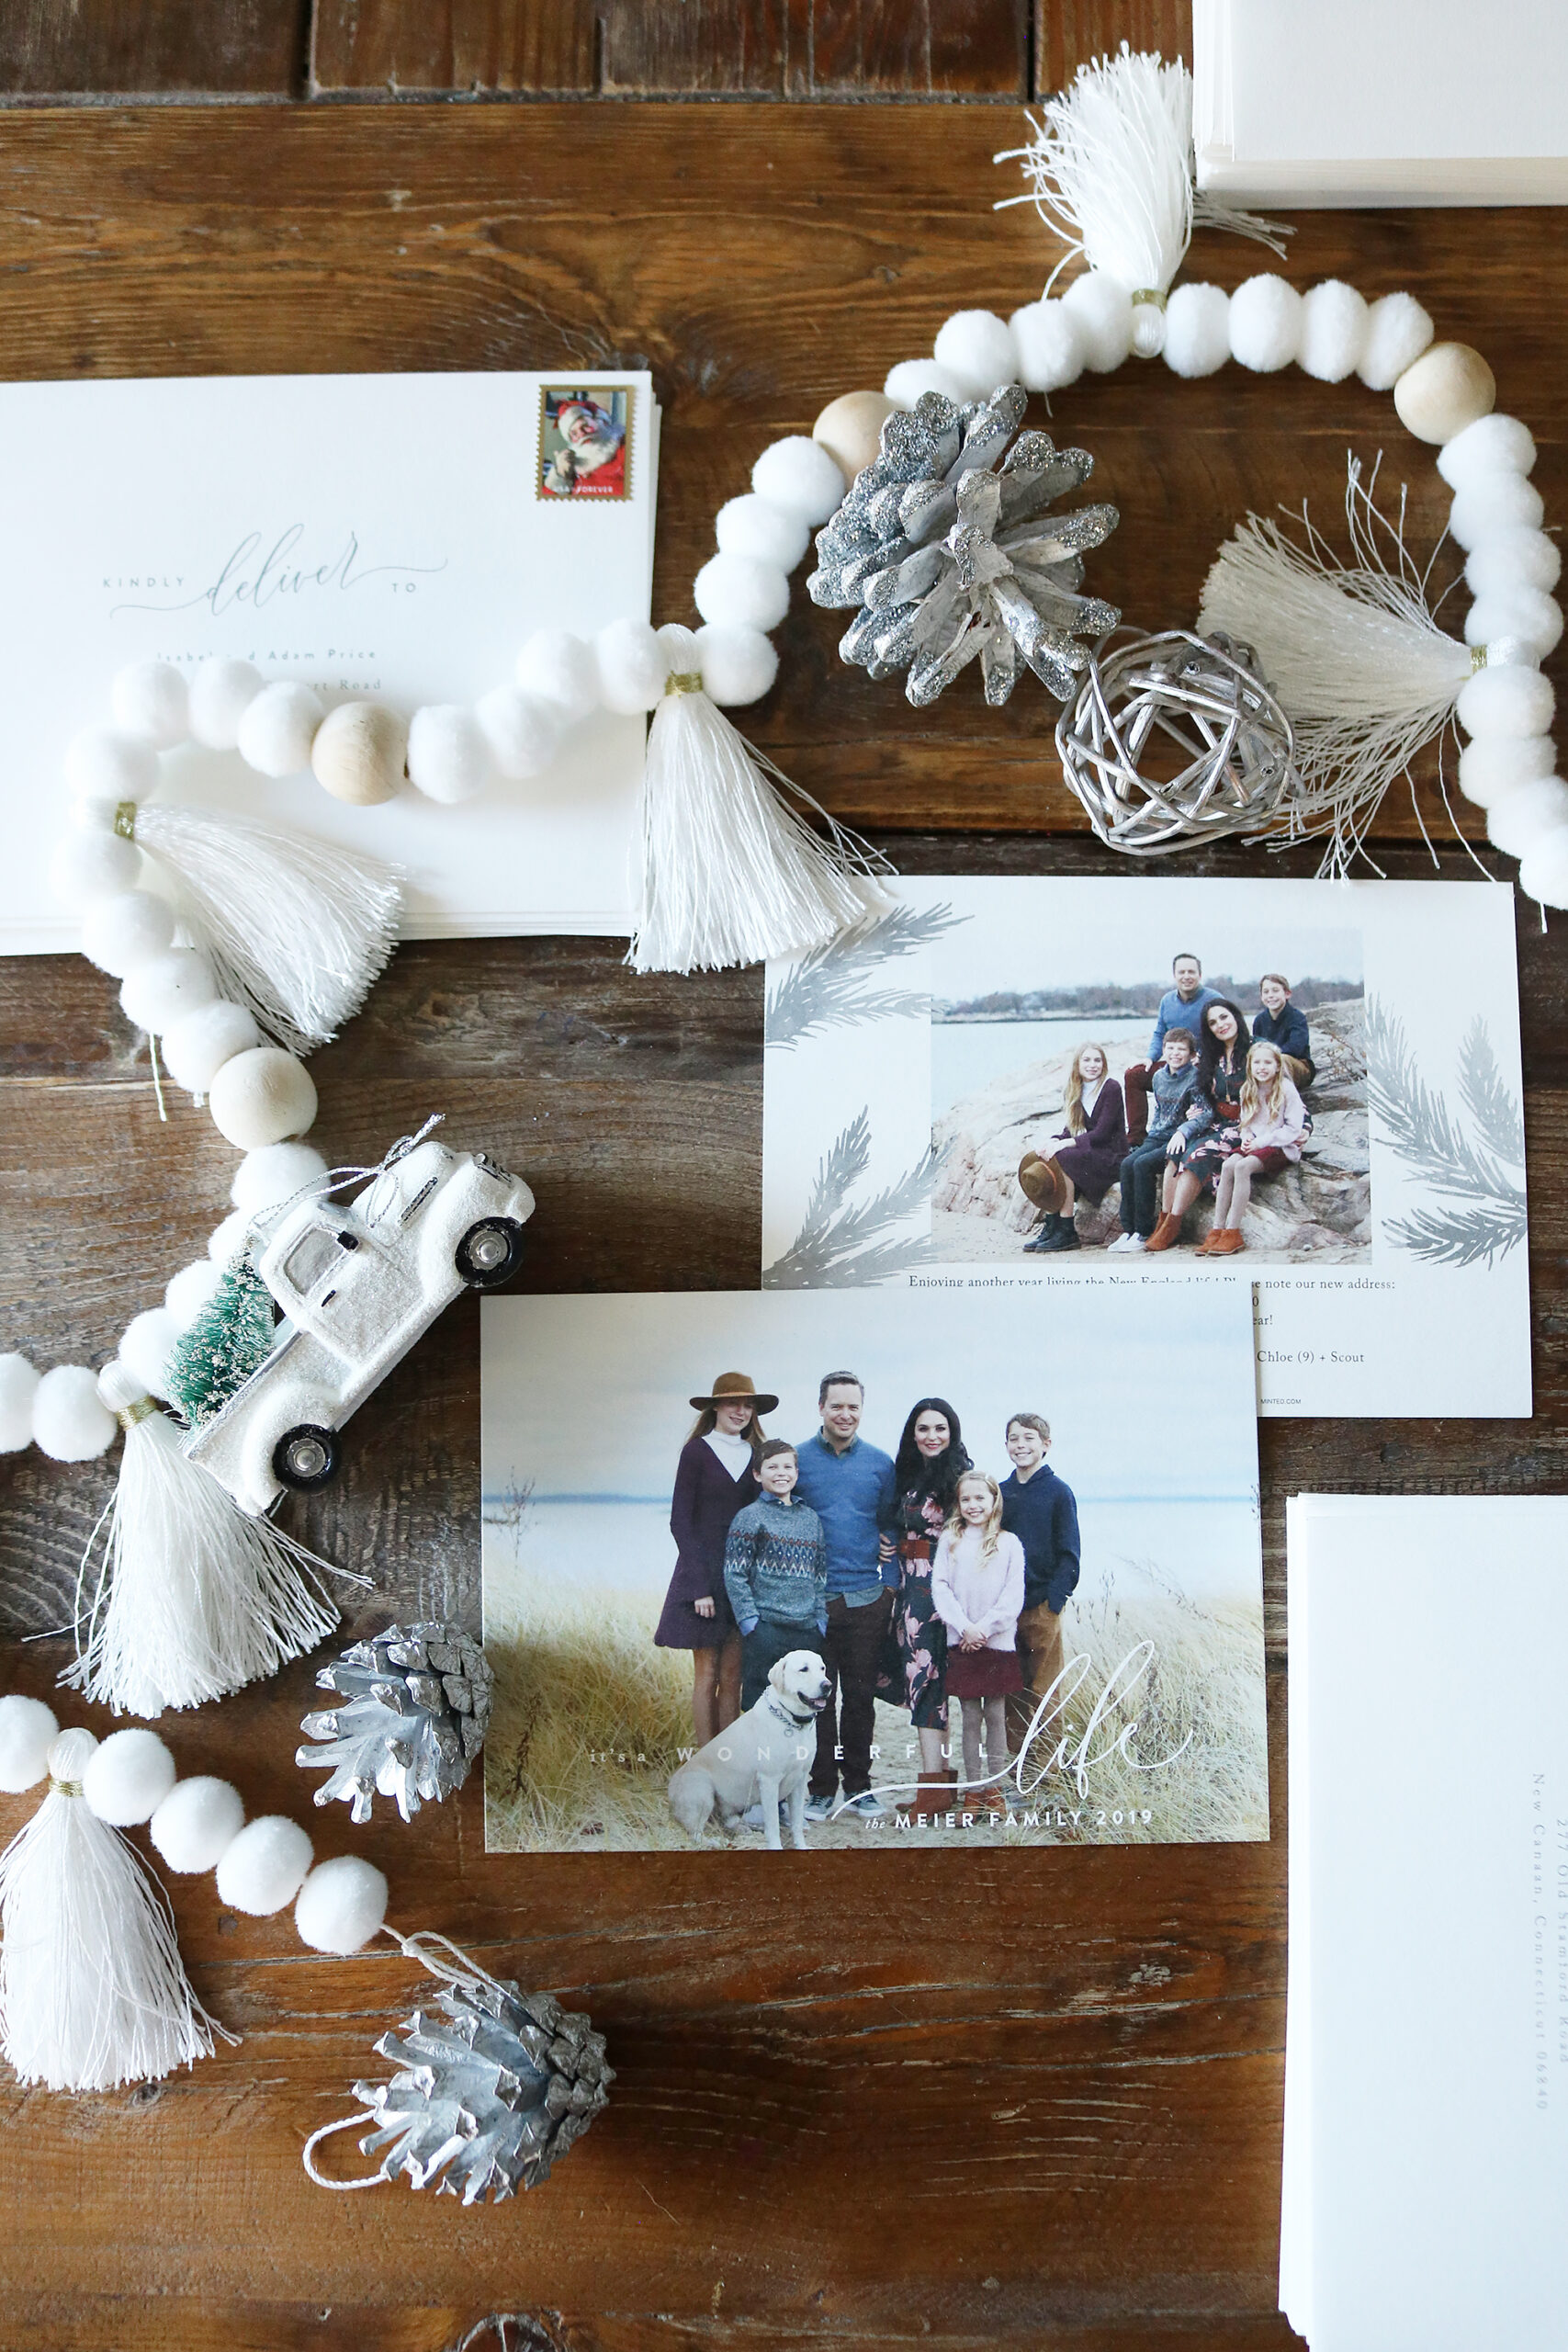 Minted Christmas Cards has the best print job, paper thickness and card designs.  We love the discounts available and the quick shipping.  Our Holiday cards come out great every year!  Darling Darleen   Top CT Lifestyle Blogger #darlingdarleen #minted #holidaycards #christmascards